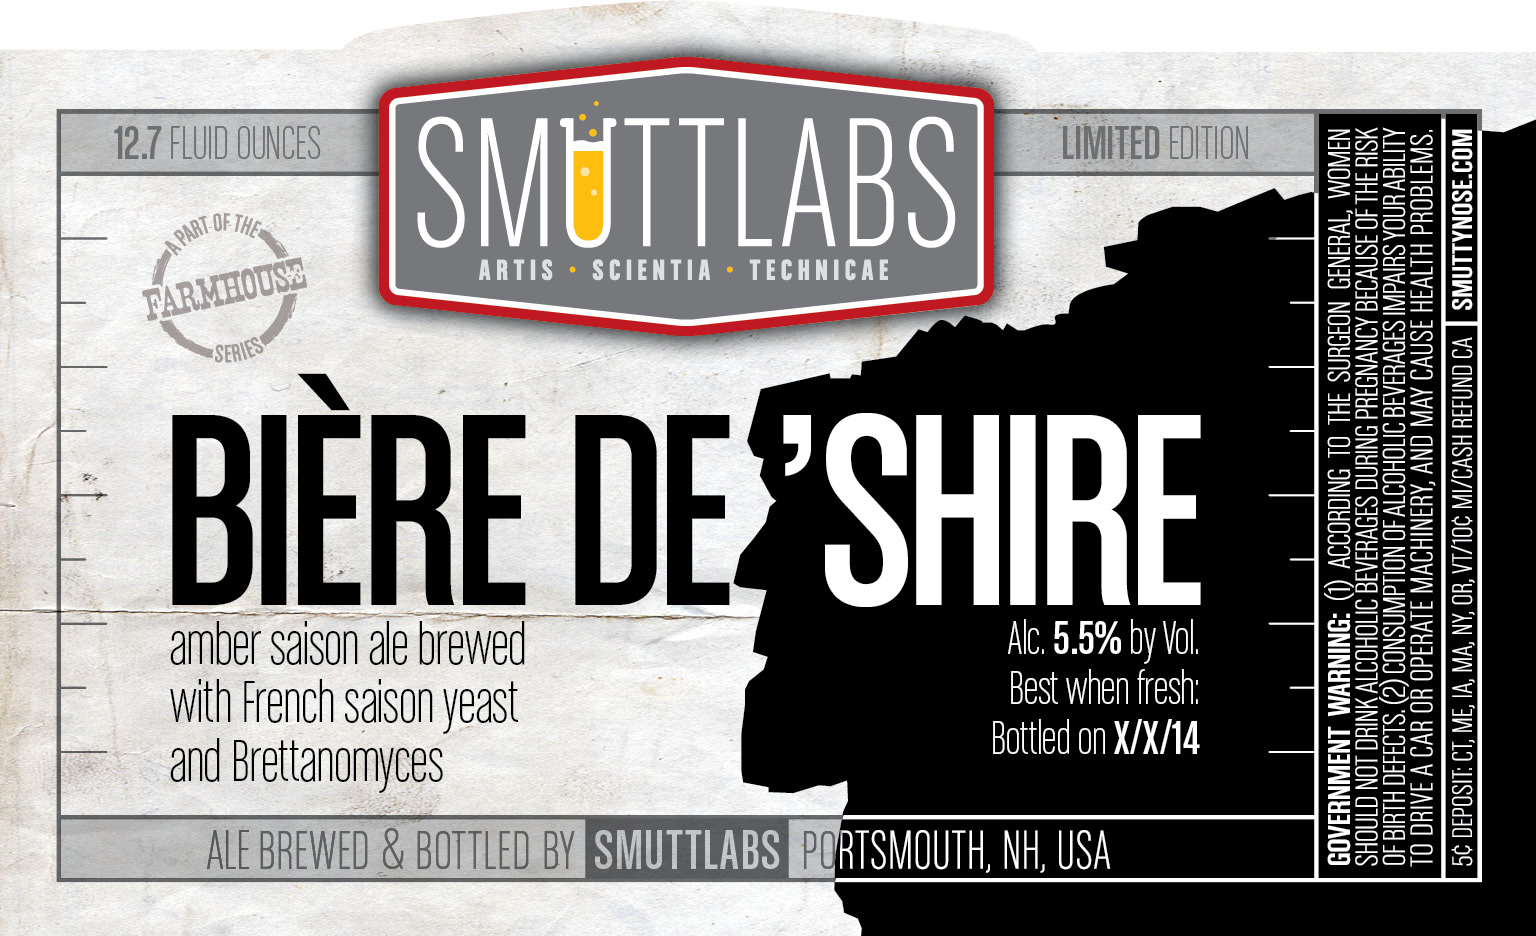 Image result for biere de shire smuttlabs